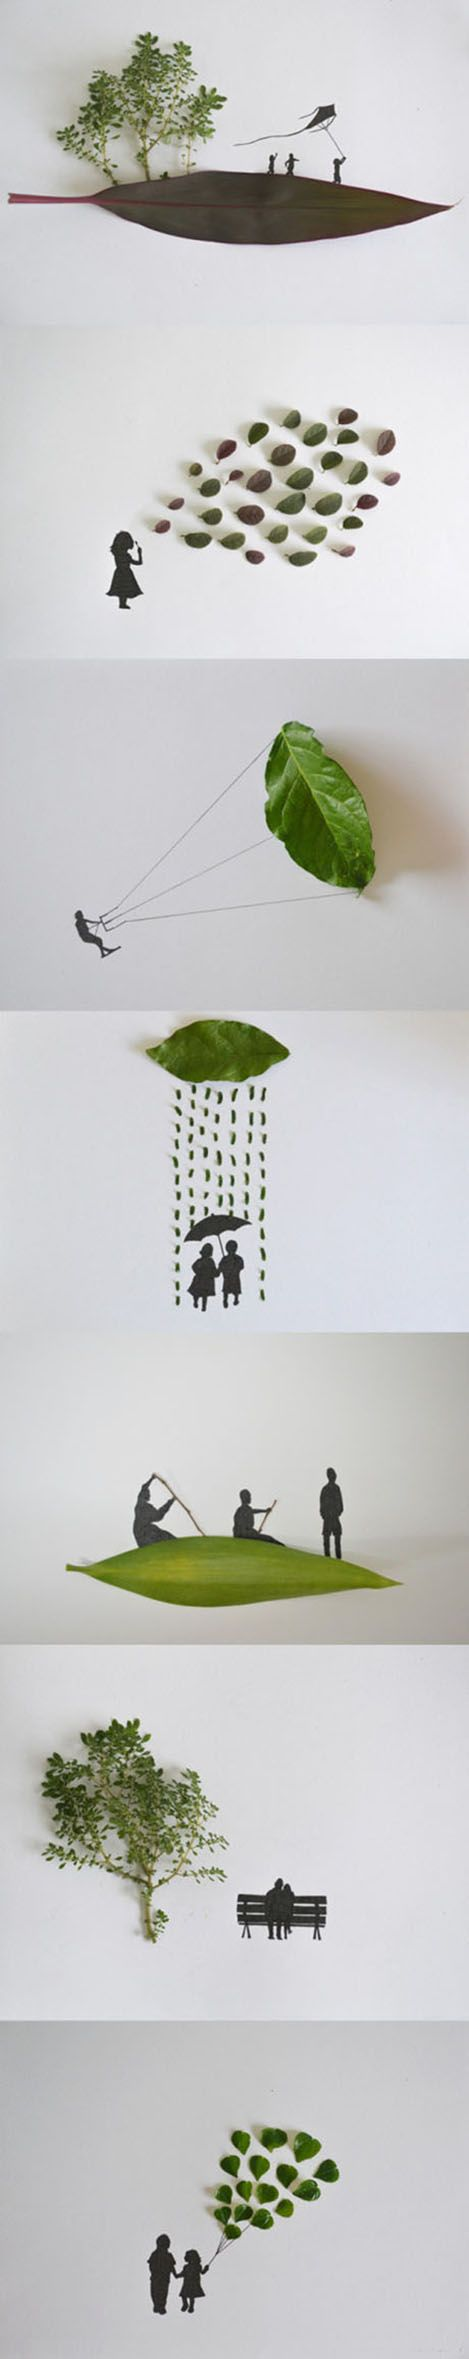 This is one of my favourite piece of artwork. Children can create a lot of different pictures with a piece of leaf.it helps expand their imagination.